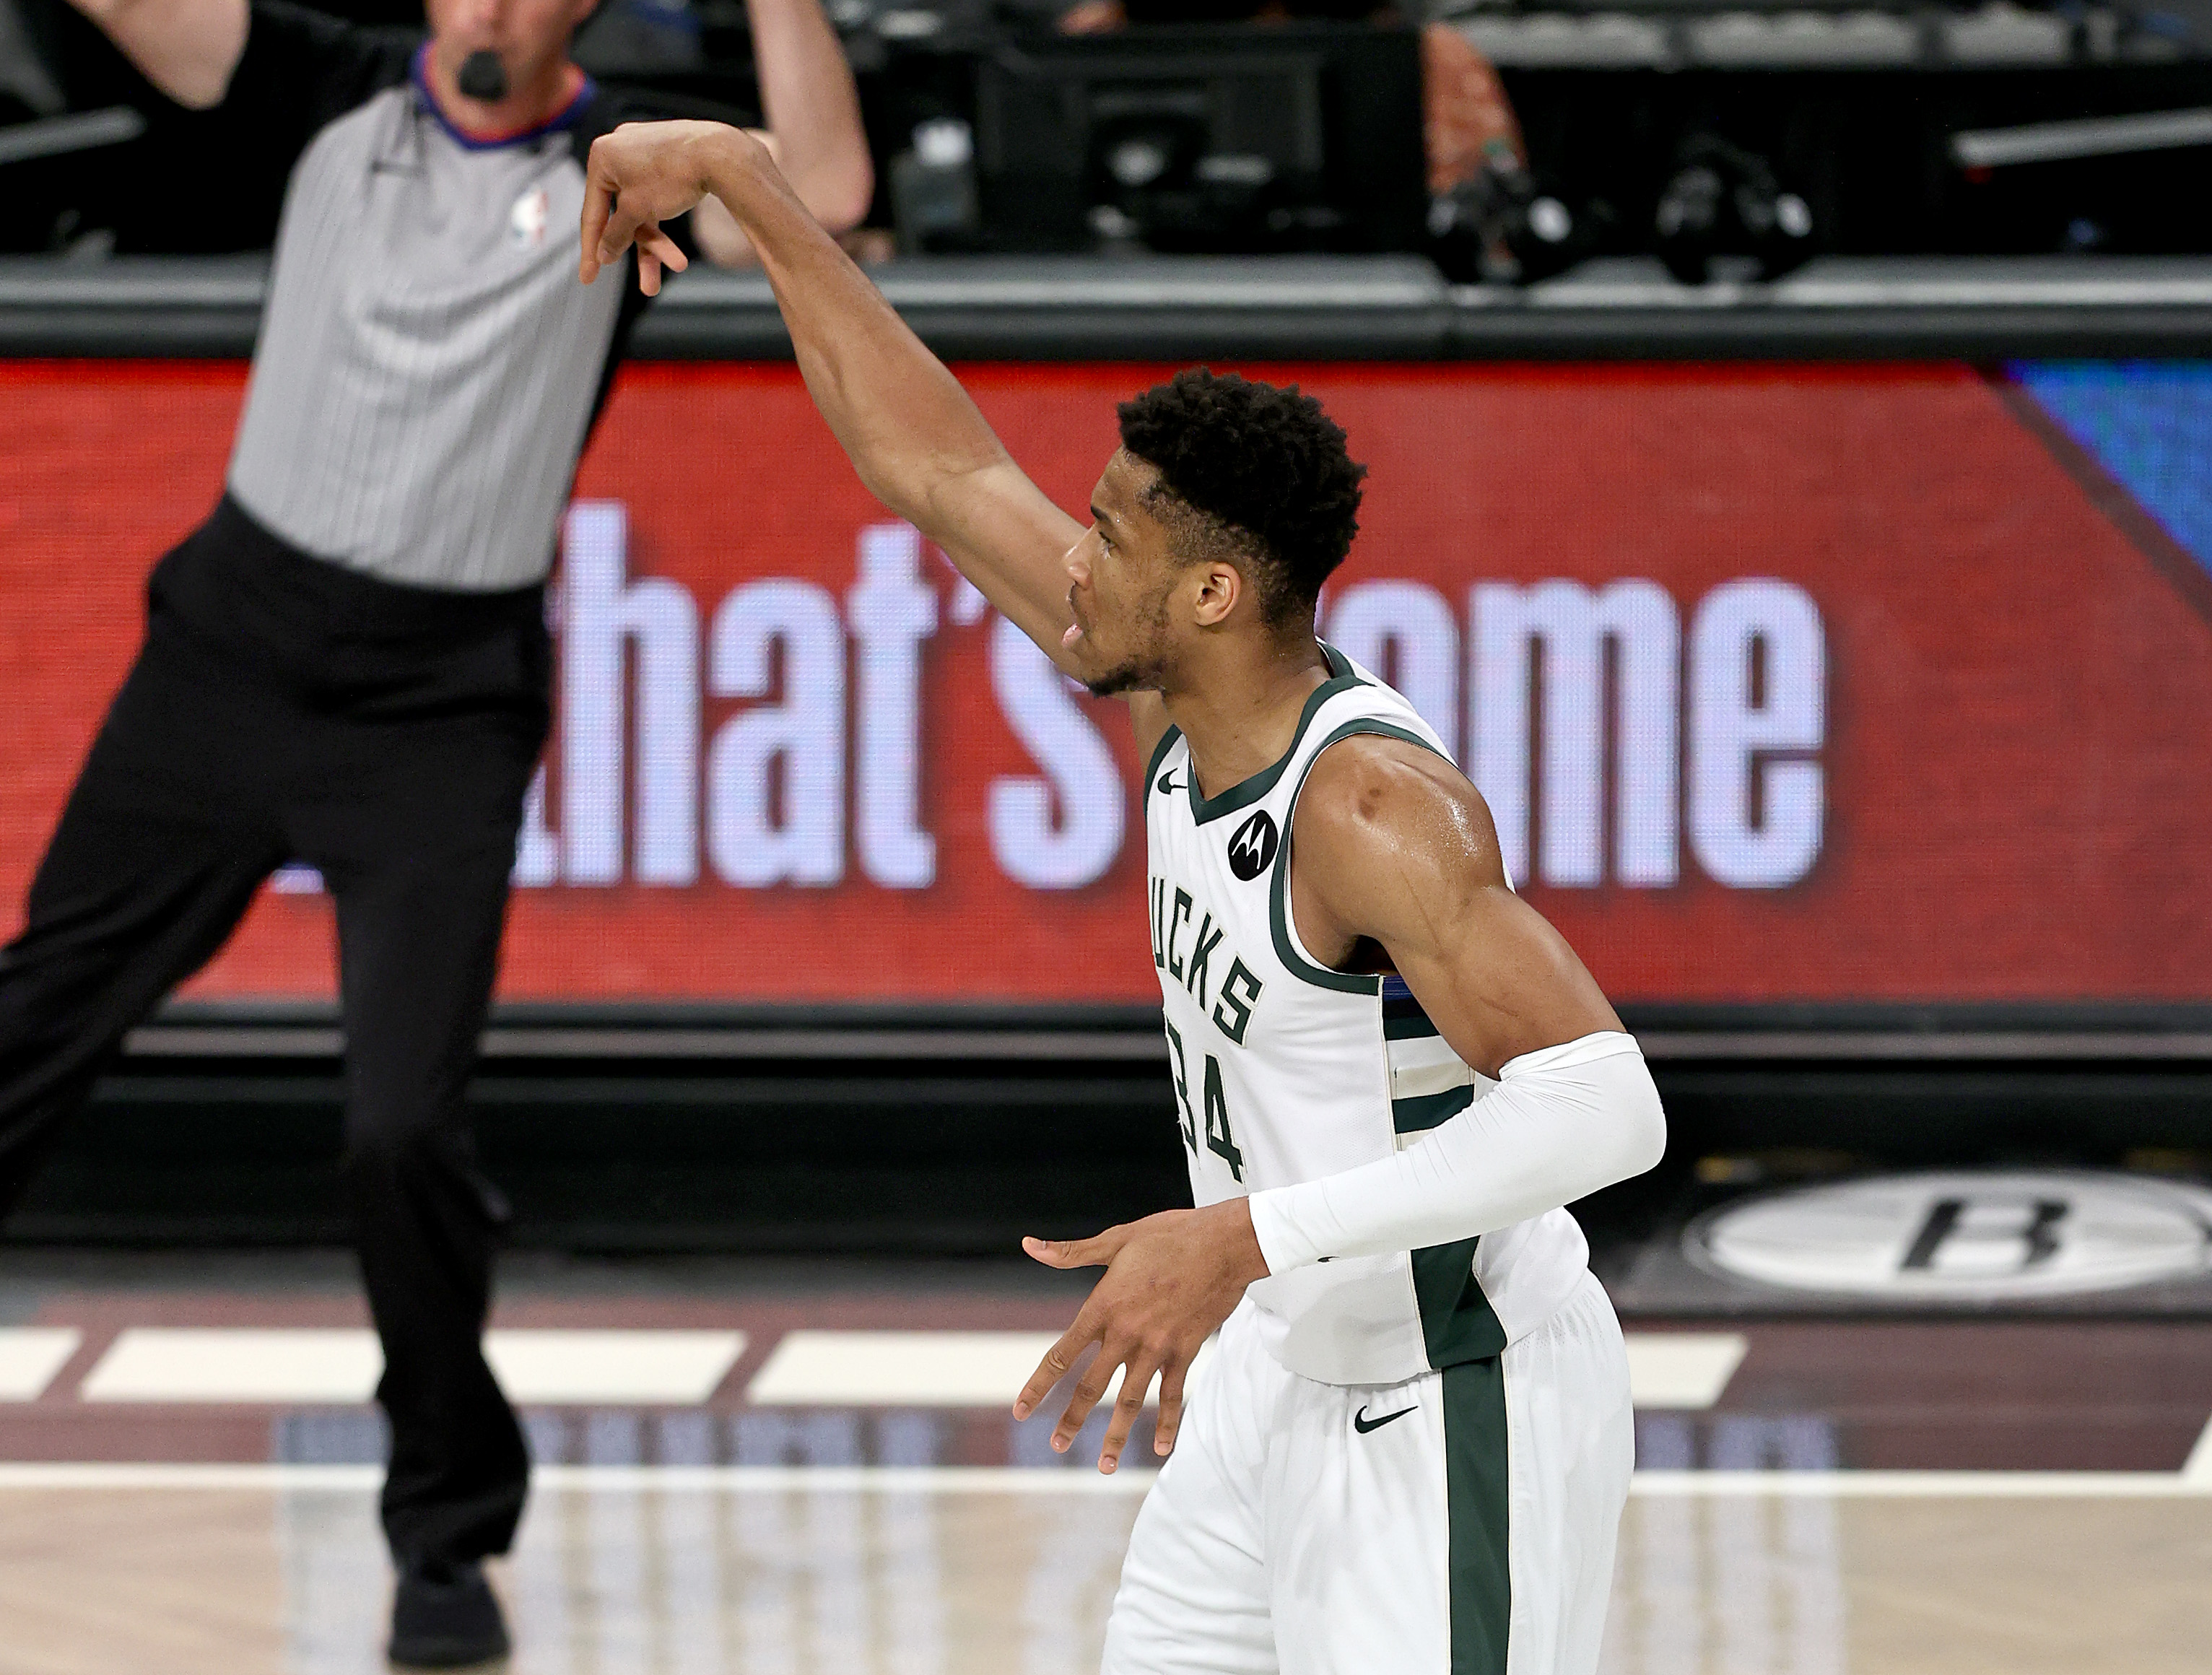 Giannis Antetokounmpo #34 of the Milwaukee Bucks celebrates his three point shot in the first quarter against the Brooklyn Nets during game seven of the Eastern Conference second round at Barclays Center on June 19, 2021 in the Brooklyn borough of New York City.